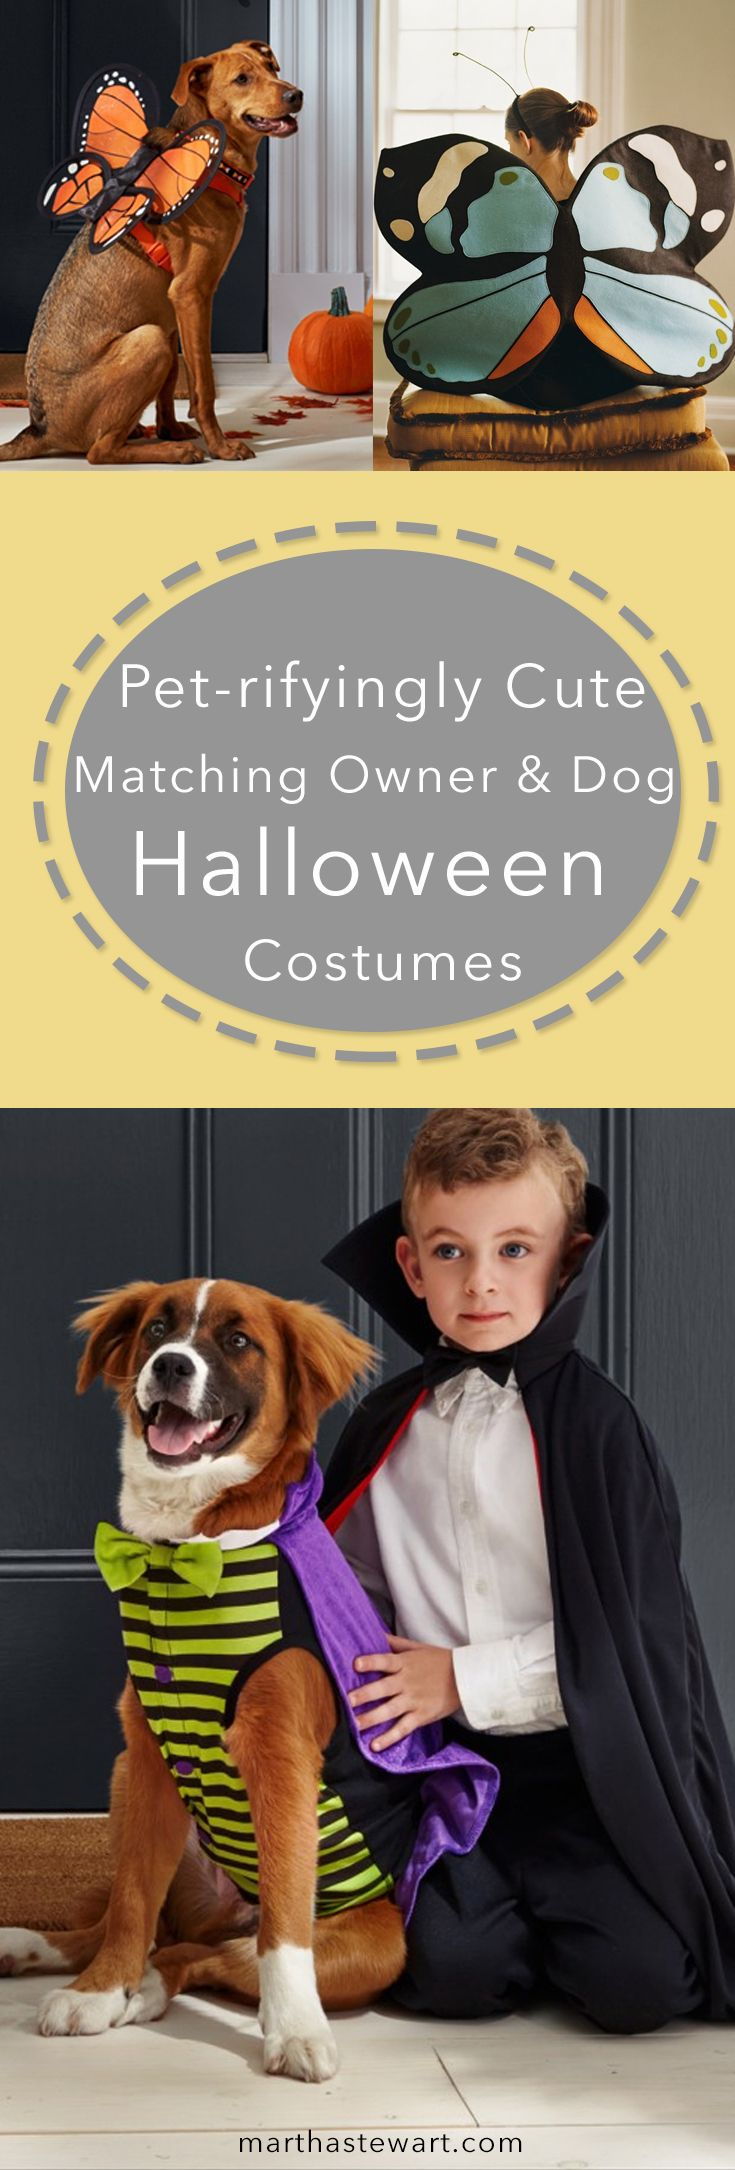 Matching Owner and Dog Costumes for a Petrifyingly Cute